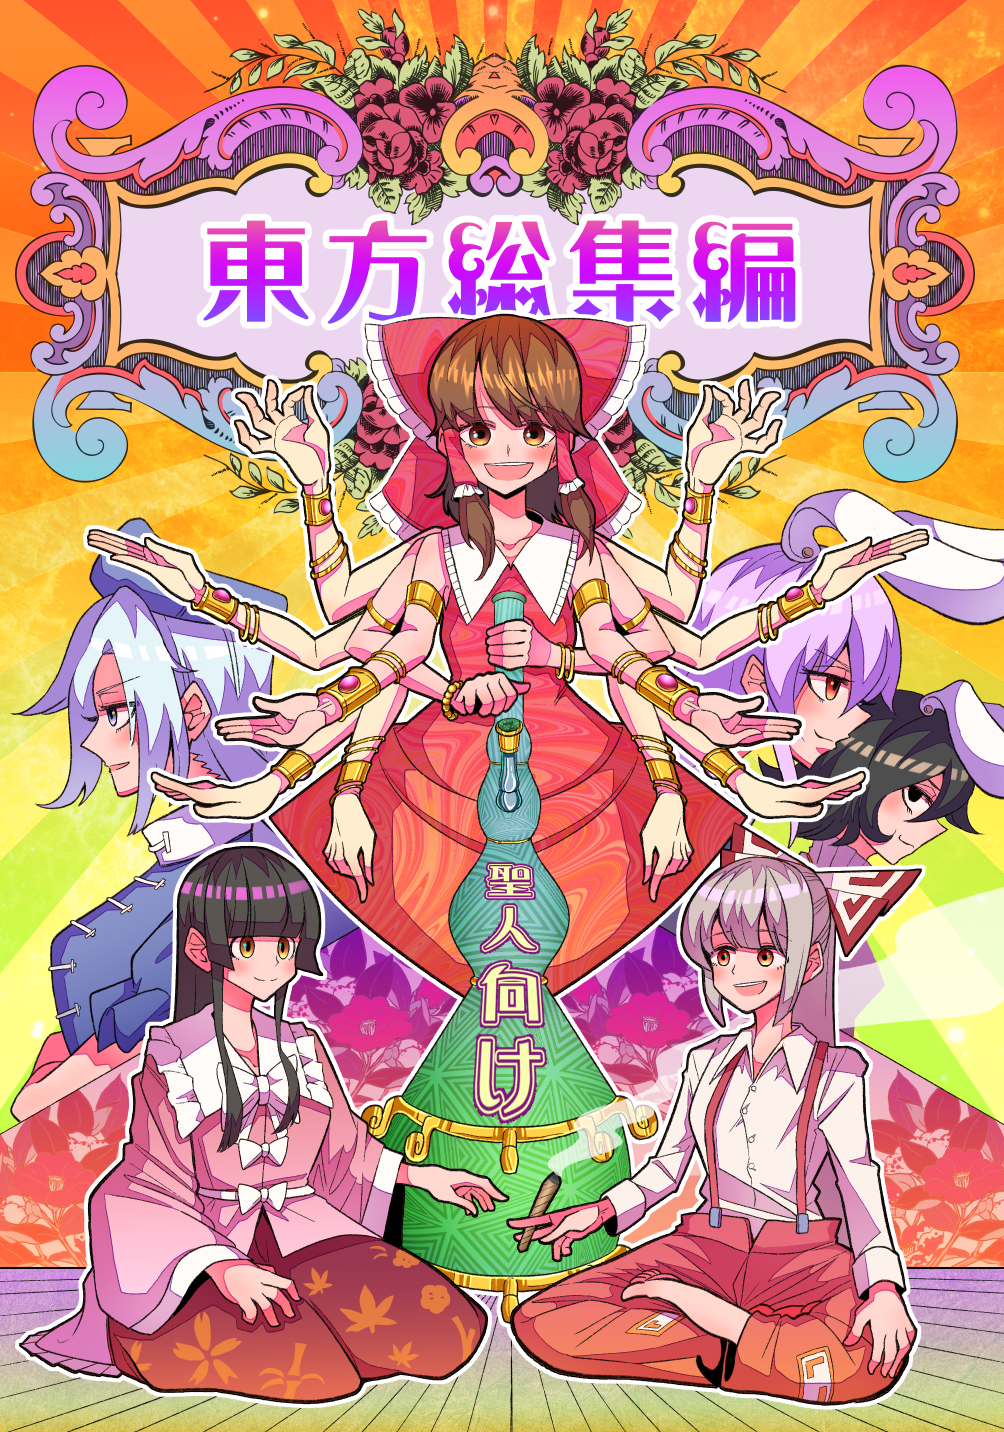 6+girls adapted_costume alison_(alison_air_lines) alternate_eye_color animal_ears armlet bangs black_eyes black_hair blue_eyes blunt_bangs blush bong bow bracelet braid breasts brown_eyes collared_shirt colorful cover cover_page crossed_arms doujin_cover dress floppy_ears floral_print flower frilled_bow frilled_hair_tubes frilled_shirt_collar frilled_sleeves frills from_side fujiwara_no_mokou giving gradient gradient_background gradient_eyes hair_between_eyes hair_bow hair_ribbon hair_tubes hakurei_reimu hand_gesture happy hat highres hime_cut houraisan_kaguya inaba_tewi indian_style jewelry light_rays long_hair long_ponytail long_skirt long_sleeves looking_afar looking_at_another looking_at_viewer looking_to_the_side marijuana medium_breasts multicolored multicolored_eyes multiple_arms multiple_girls multiple_hands nurse_cap open_collar open_mouth orange_background orange_eyes outline pants pink_dress pink_shirt profile purple_hair rabbit_ears red_background red_dress red_pants red_skirt reisen_udongein_inaba ribbon shiny shiny_hair shirt short_hair short_sleeves sidelocks silver_hair single_braid sitting skirt sleeveless sleeveless_shirt smile suspenders touhou translation_request turtleneck_dress very_long_hair white_shirt wide_sleeves yagokoro_eirin yellow_background yellow_eyes yokozuwari